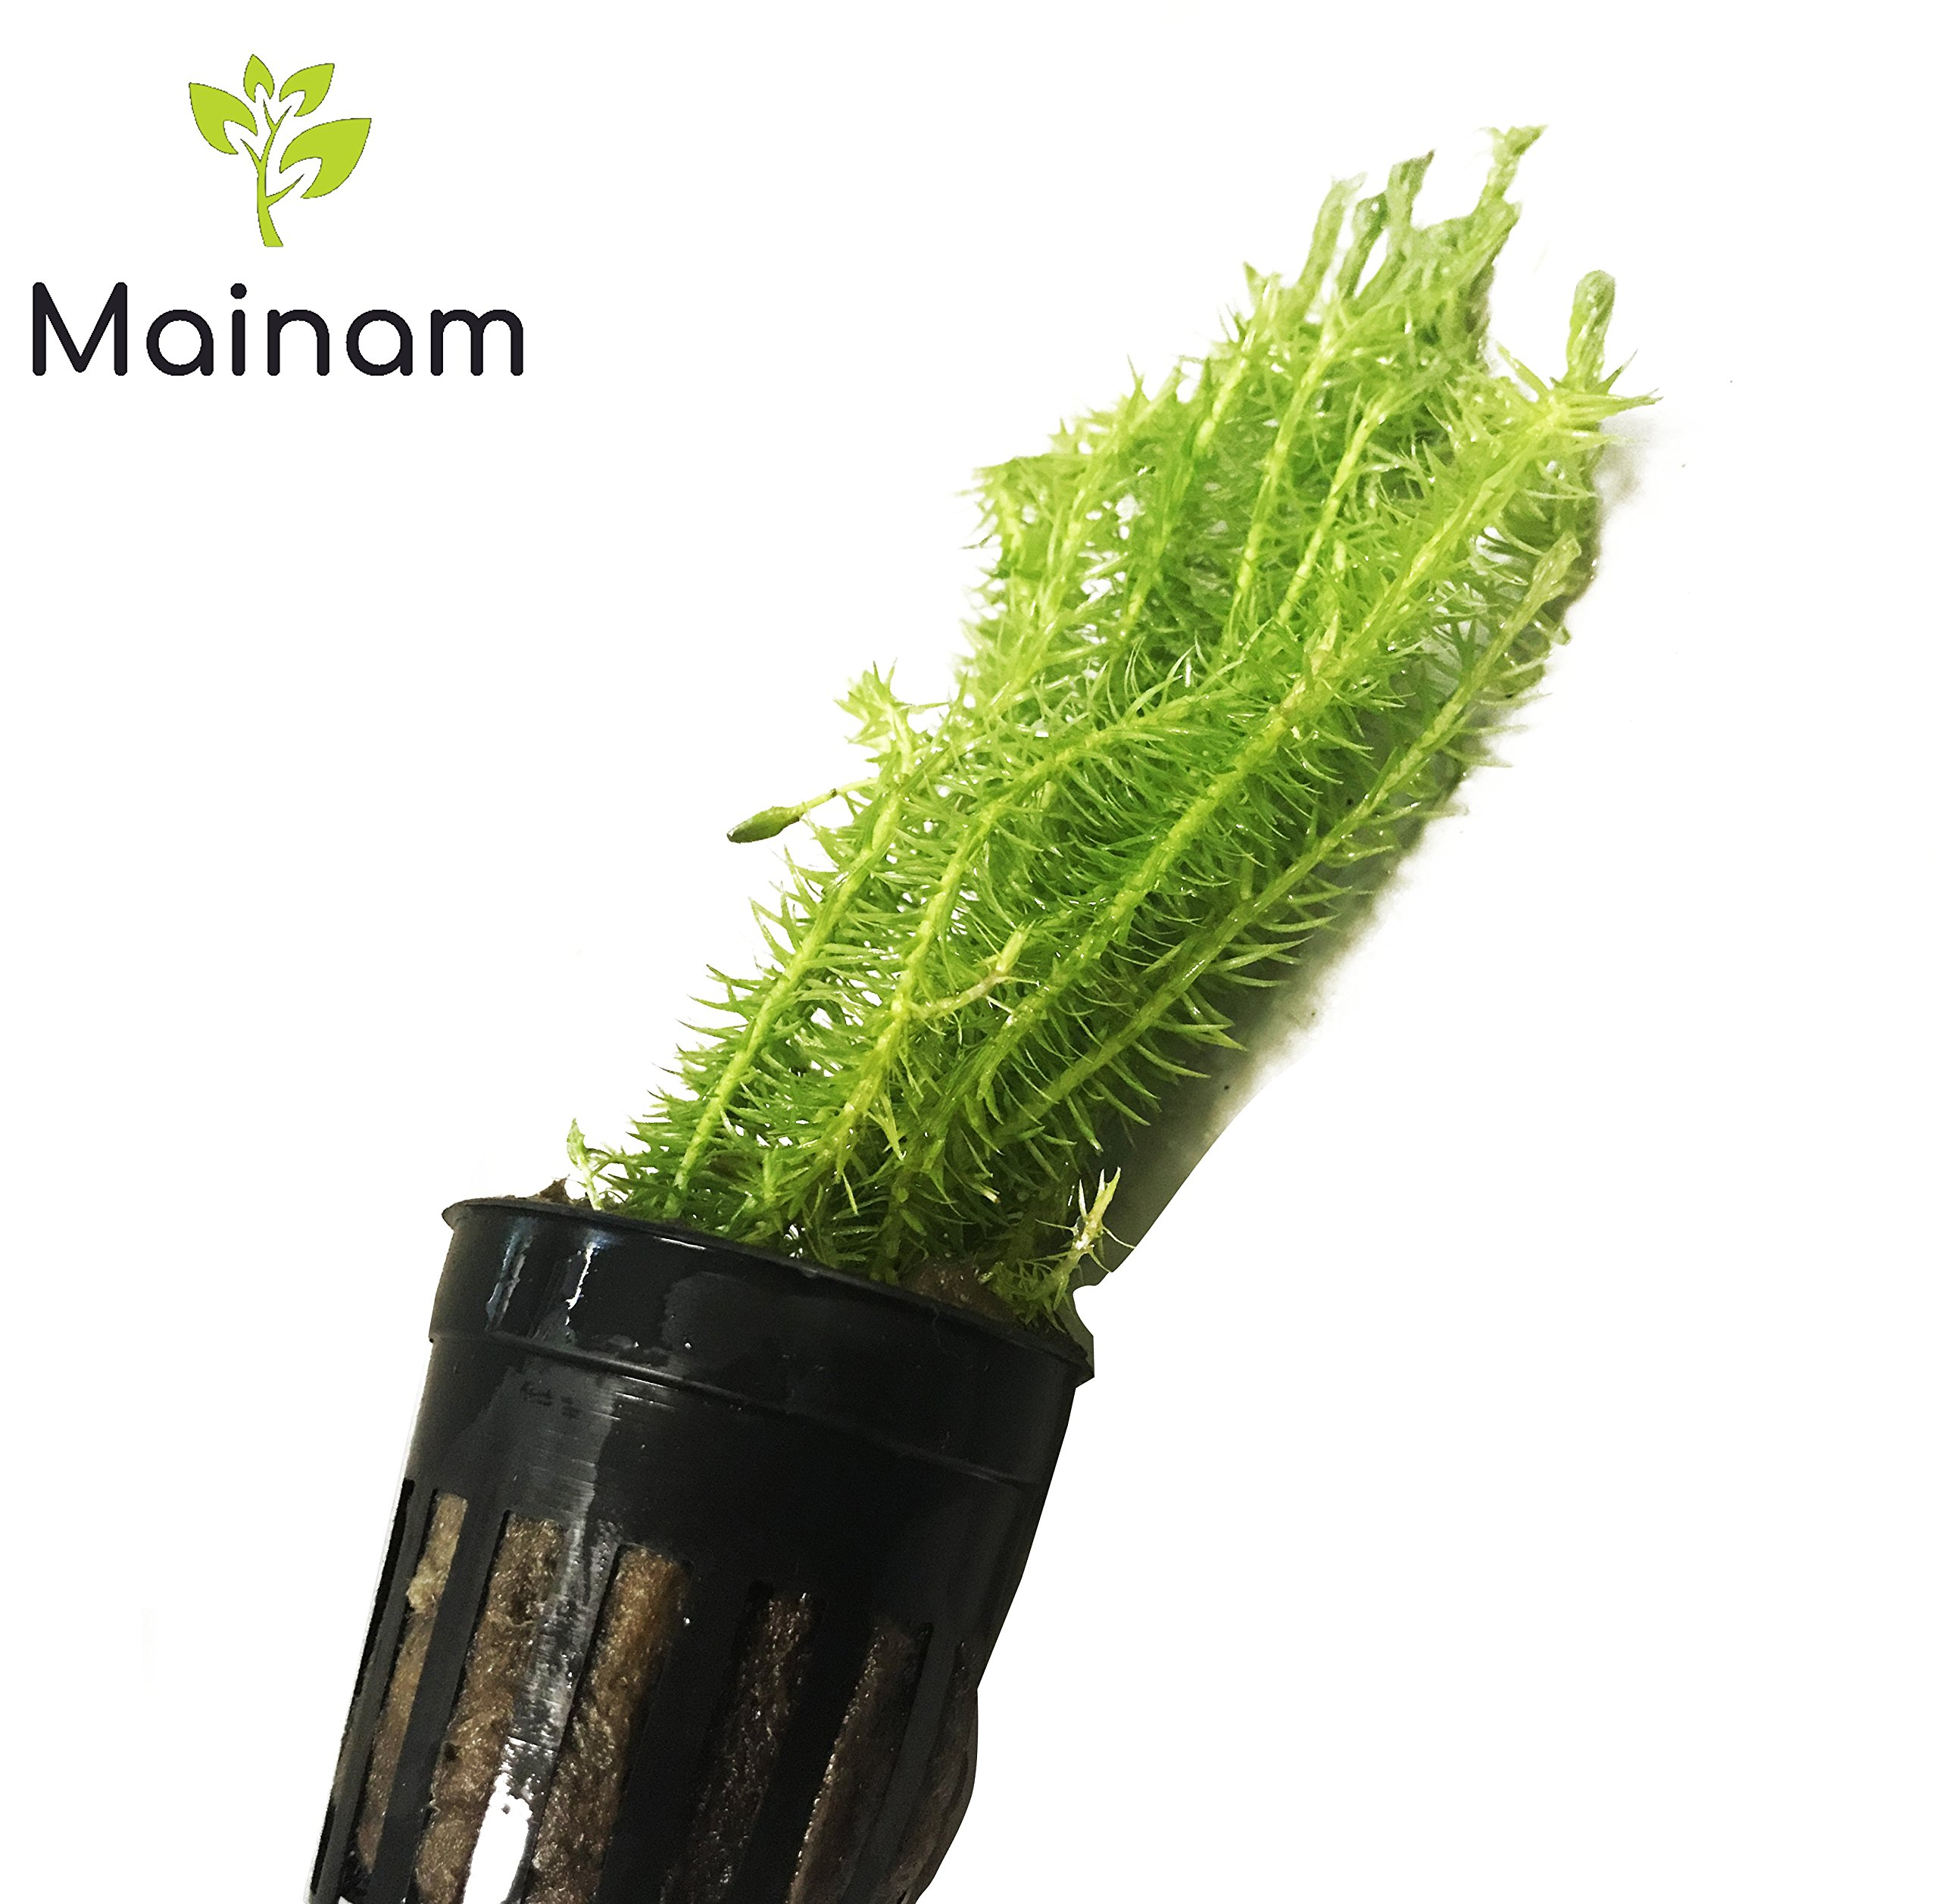 Mainam Stream Bogmoss Mayaca Fluviatilis Potted Stems Freshwater Easy Live Aquarium Plant Decorations Natural Aquascape by Mainam